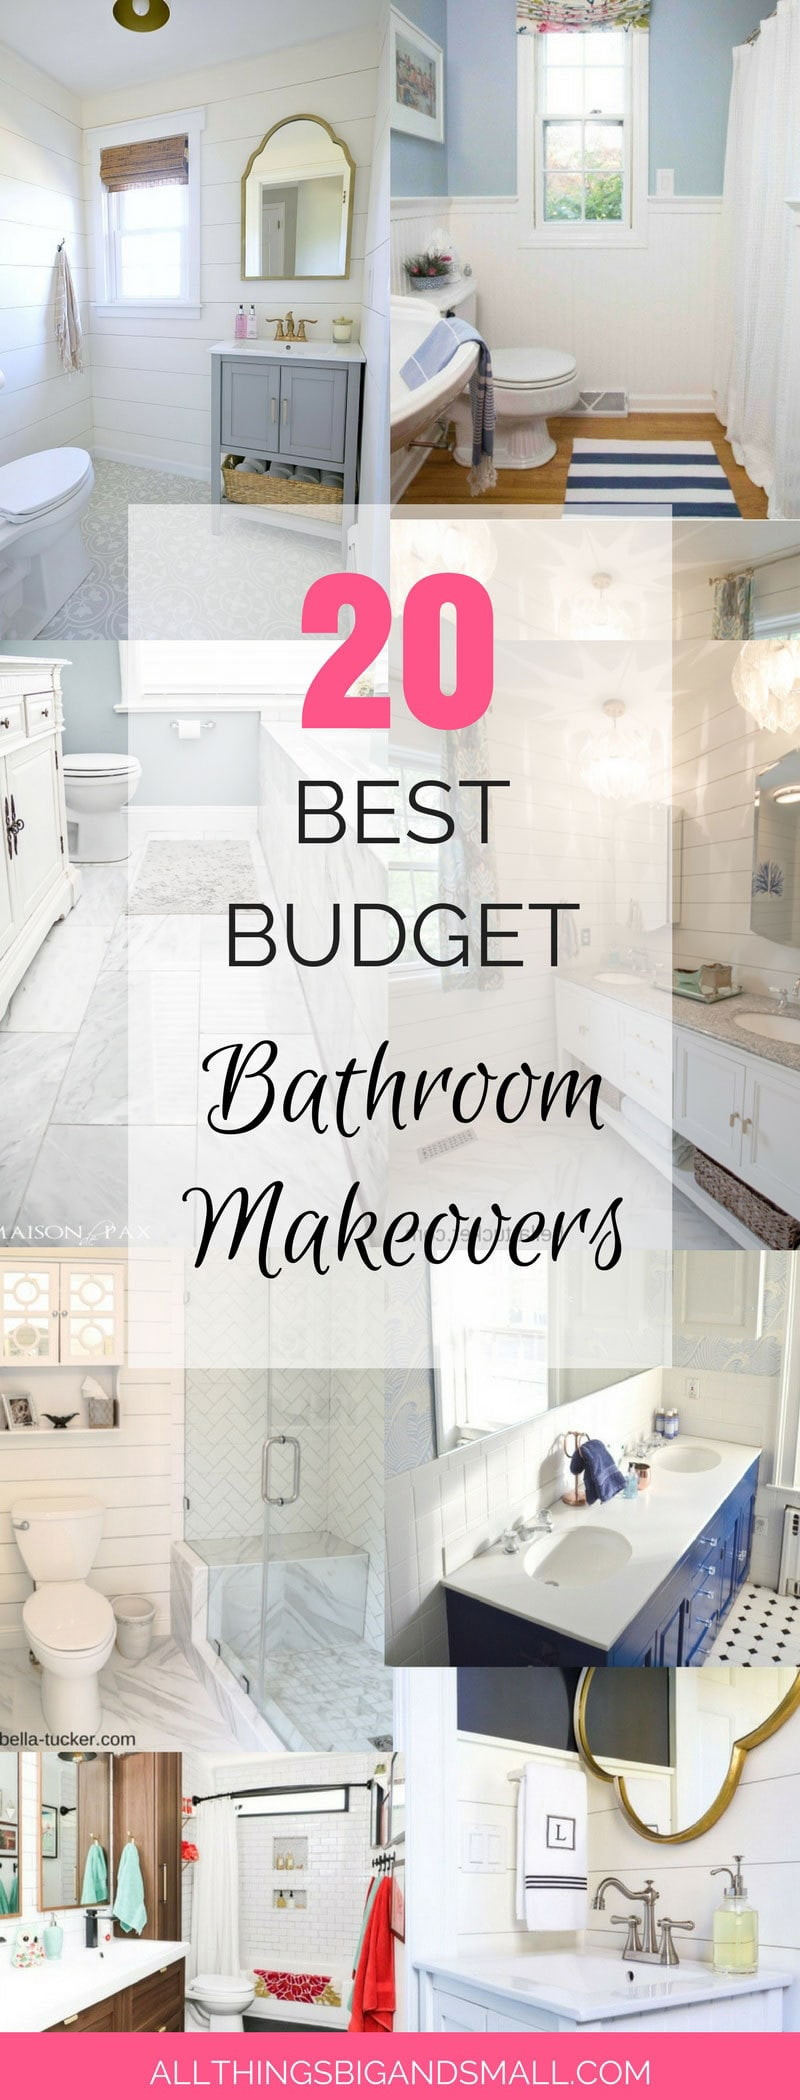 Best Budget Friendly Bathroom Makeovers You Have To See! | Bathroom Makeover | ALL THINGS BIG AND SMALL